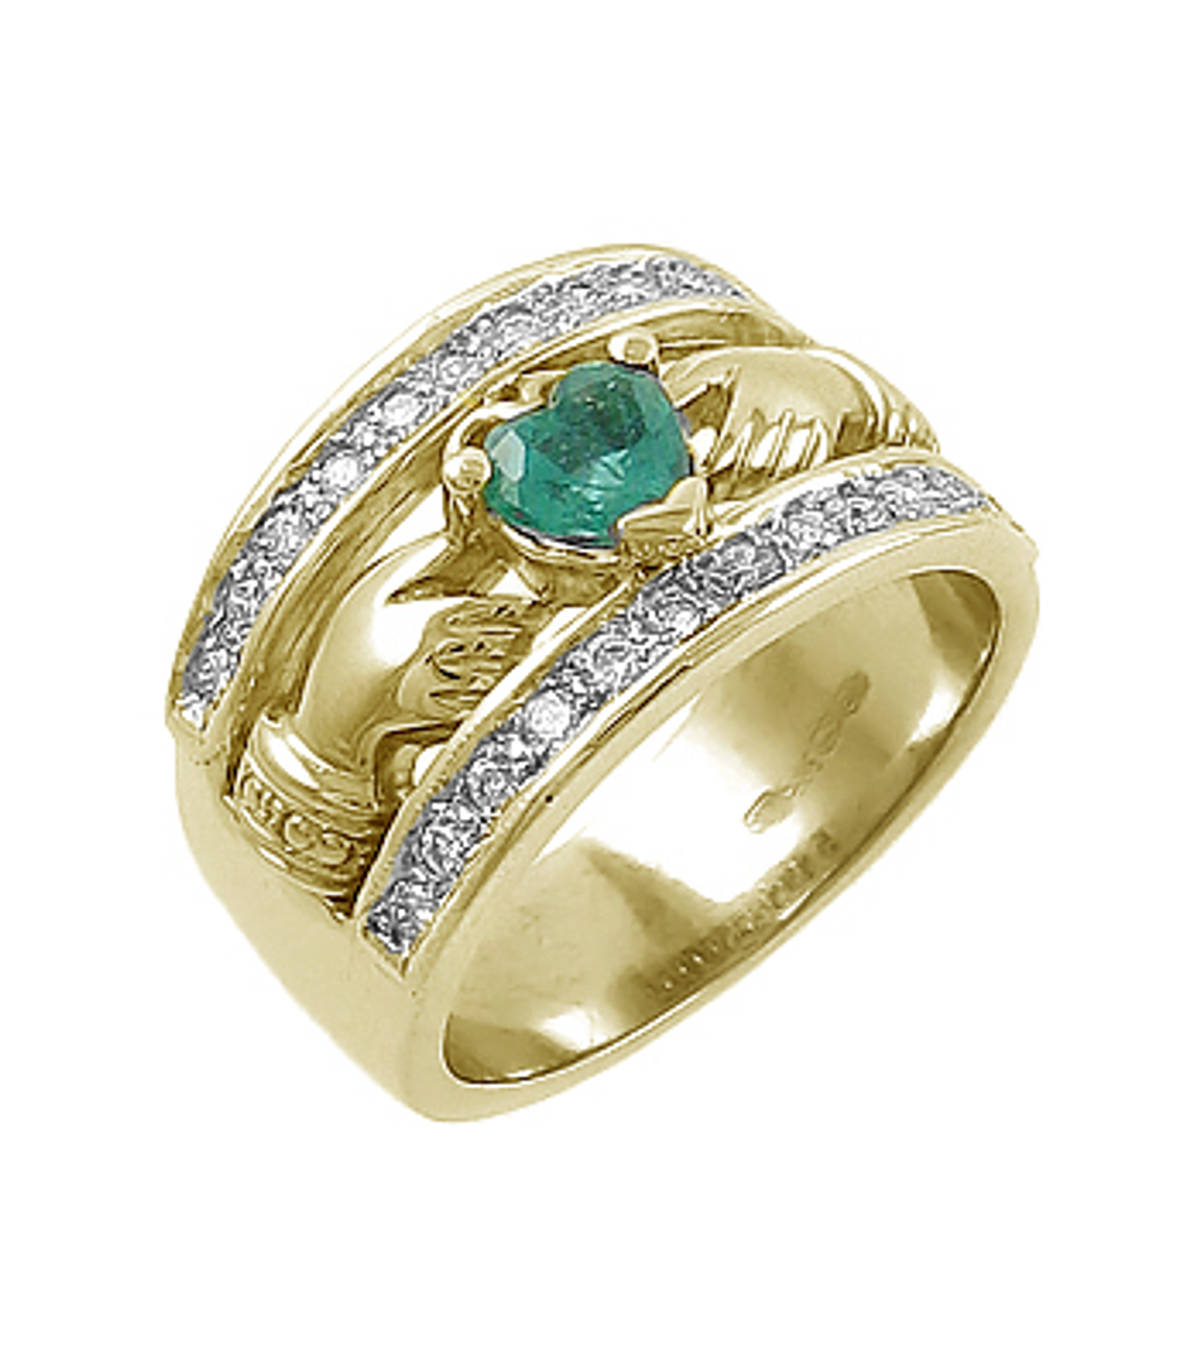 14 ct gold emerald 0.35cts/diamonds 0.26cts claddagh engagement ring